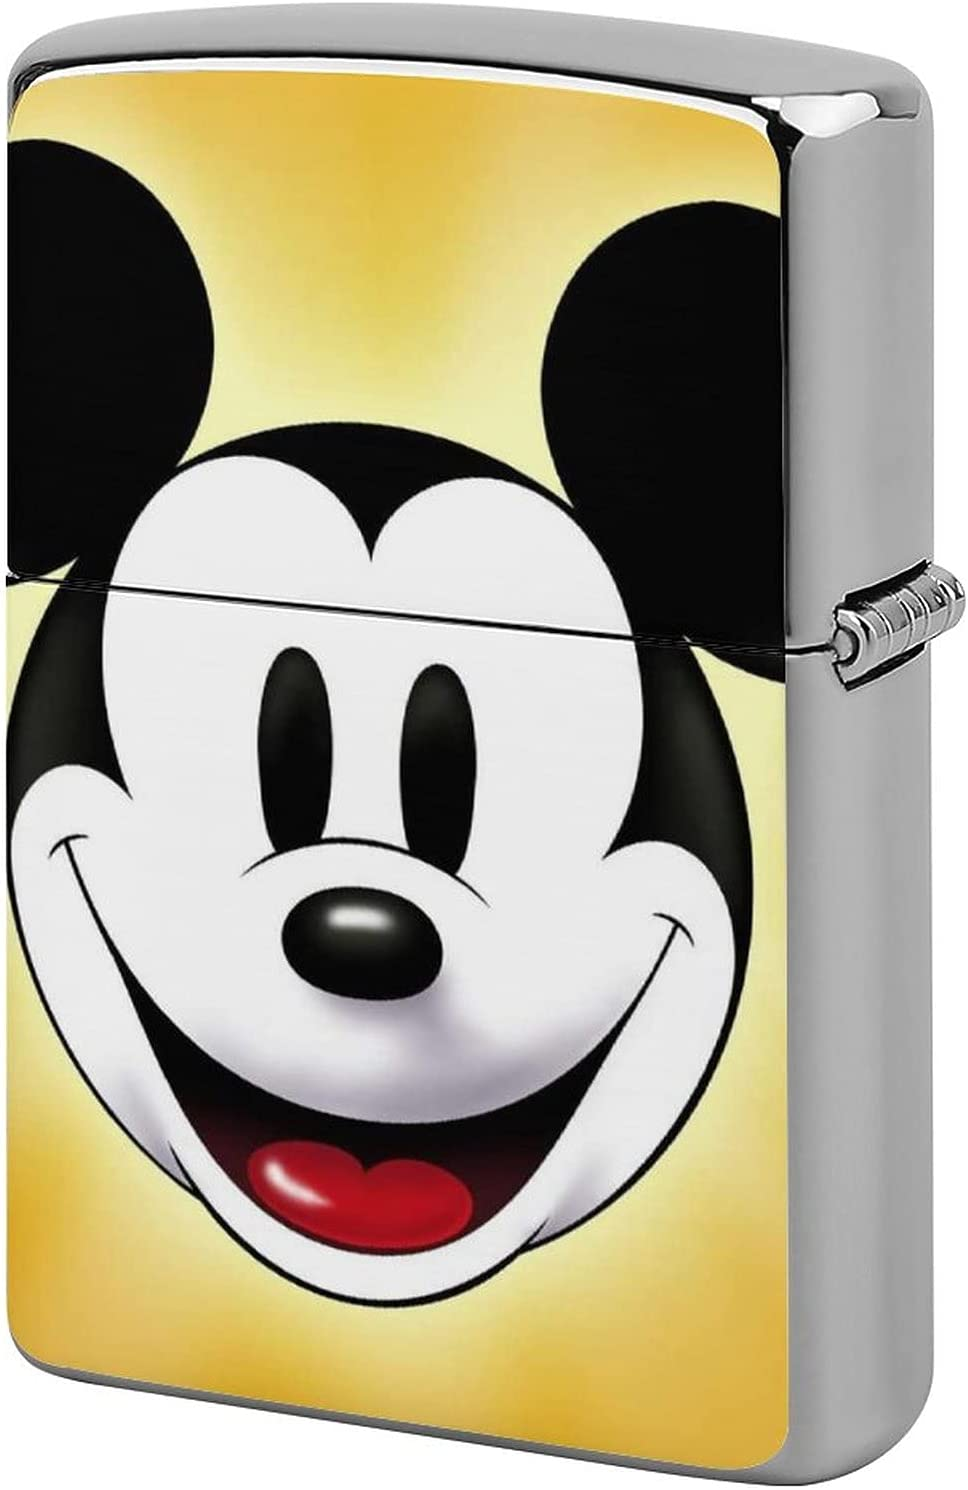 Pocket Ultra-Cheap Deals Lighter Housing for Man Women and Ligh low-pricing Personalize Metal